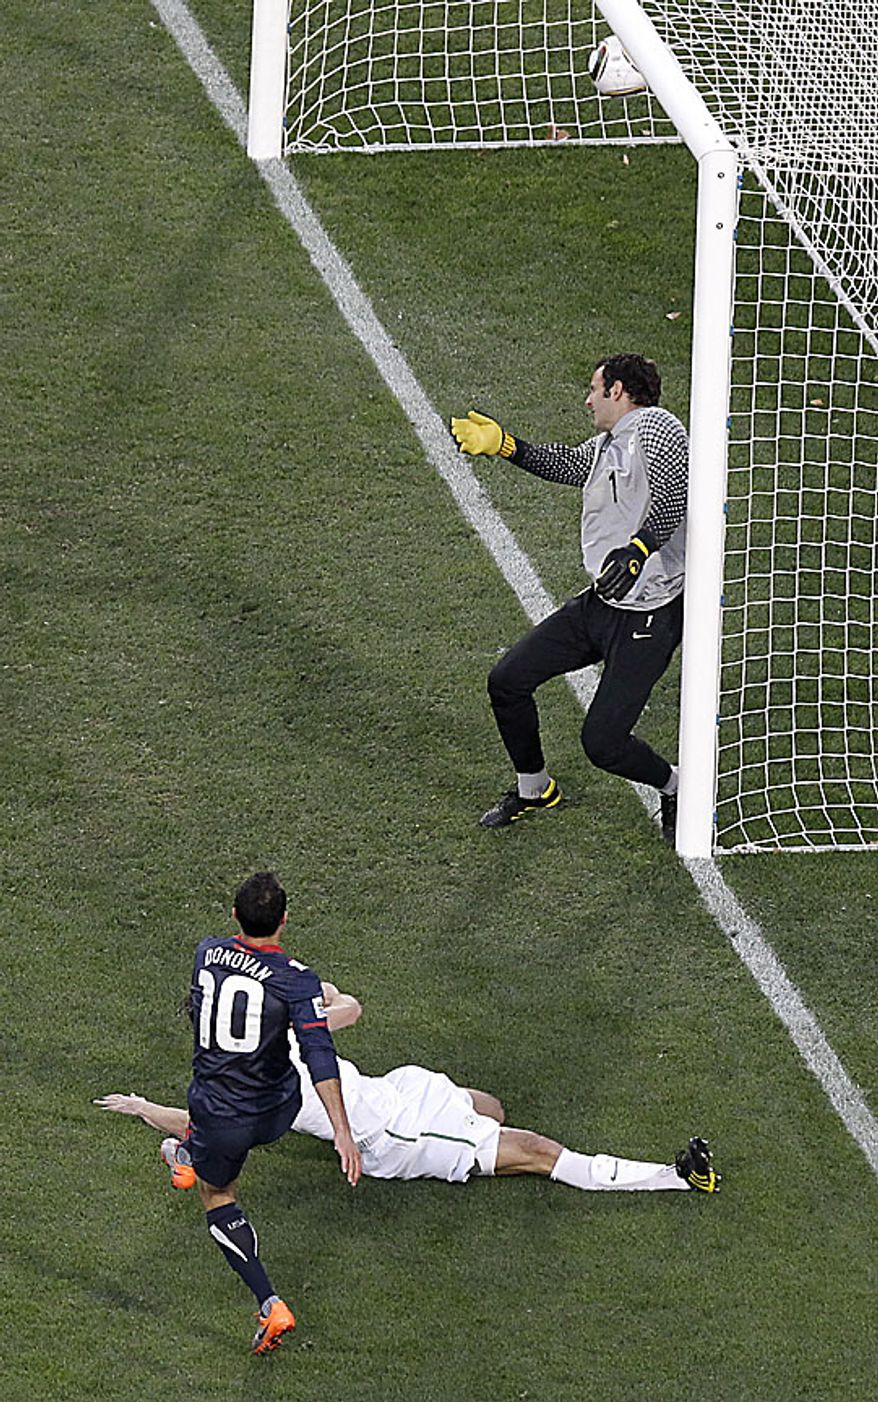 United States' Landon Donovan, foreground, scores a goal against Slovenia goalkeeper Samir Handanovic, right, during the World Cup group C soccer match between Slovenia and the United States at Ellis Park Stadium in Johannesburg, South Africa, Friday, June 18, 2010.  (AP Photo/Tom Curley )